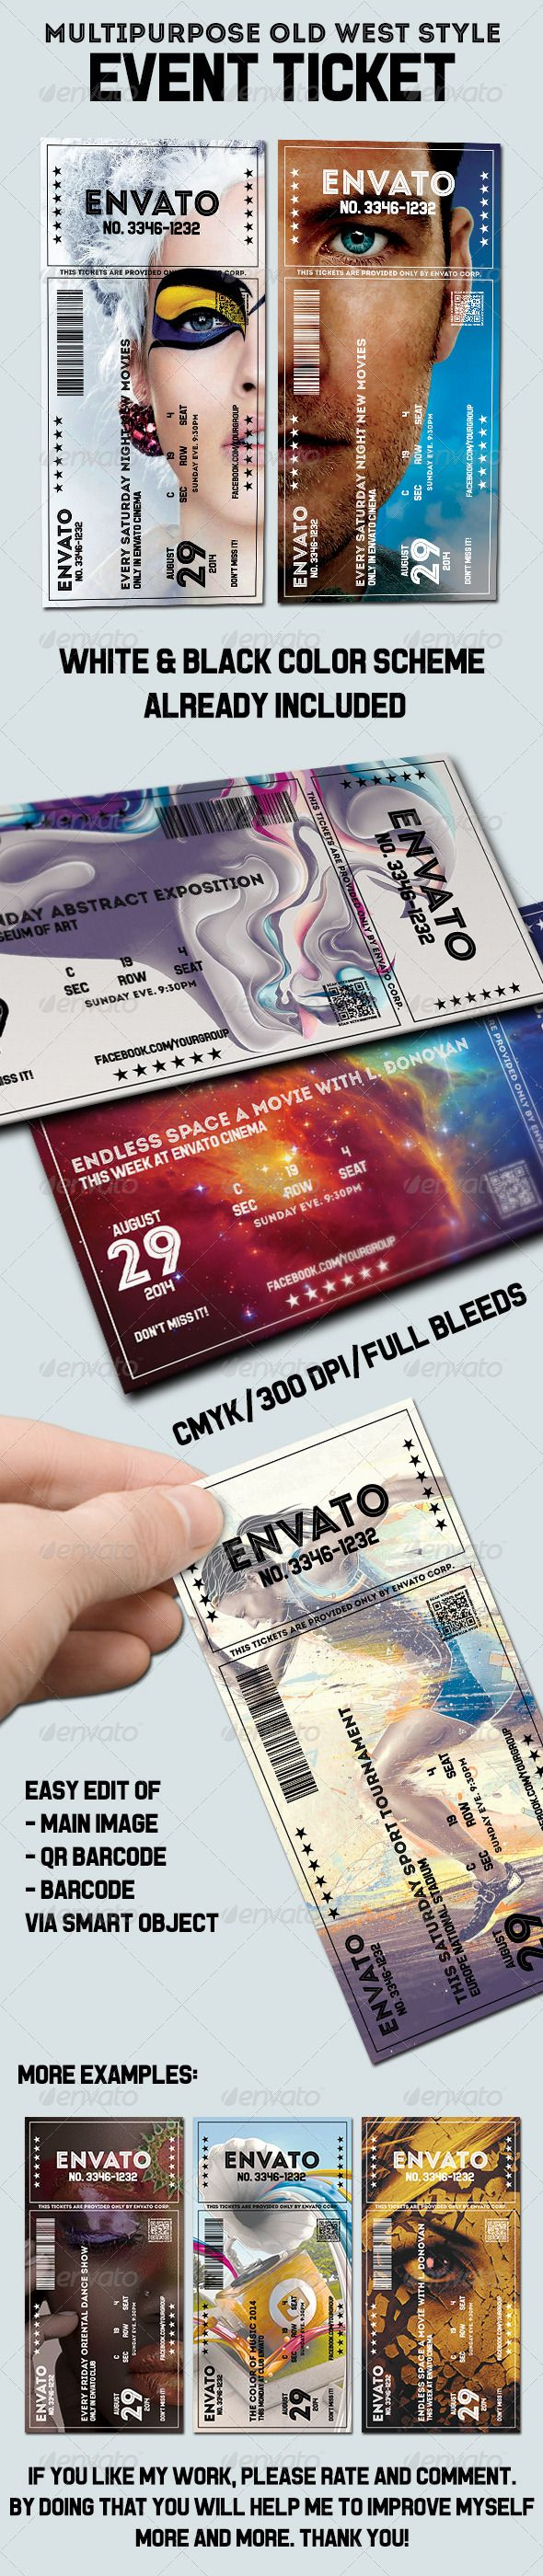 Concert Ticket Template Free Download Interesting 19 Best Voucher Images On Pinterest  Gift Voucher Design Gift .